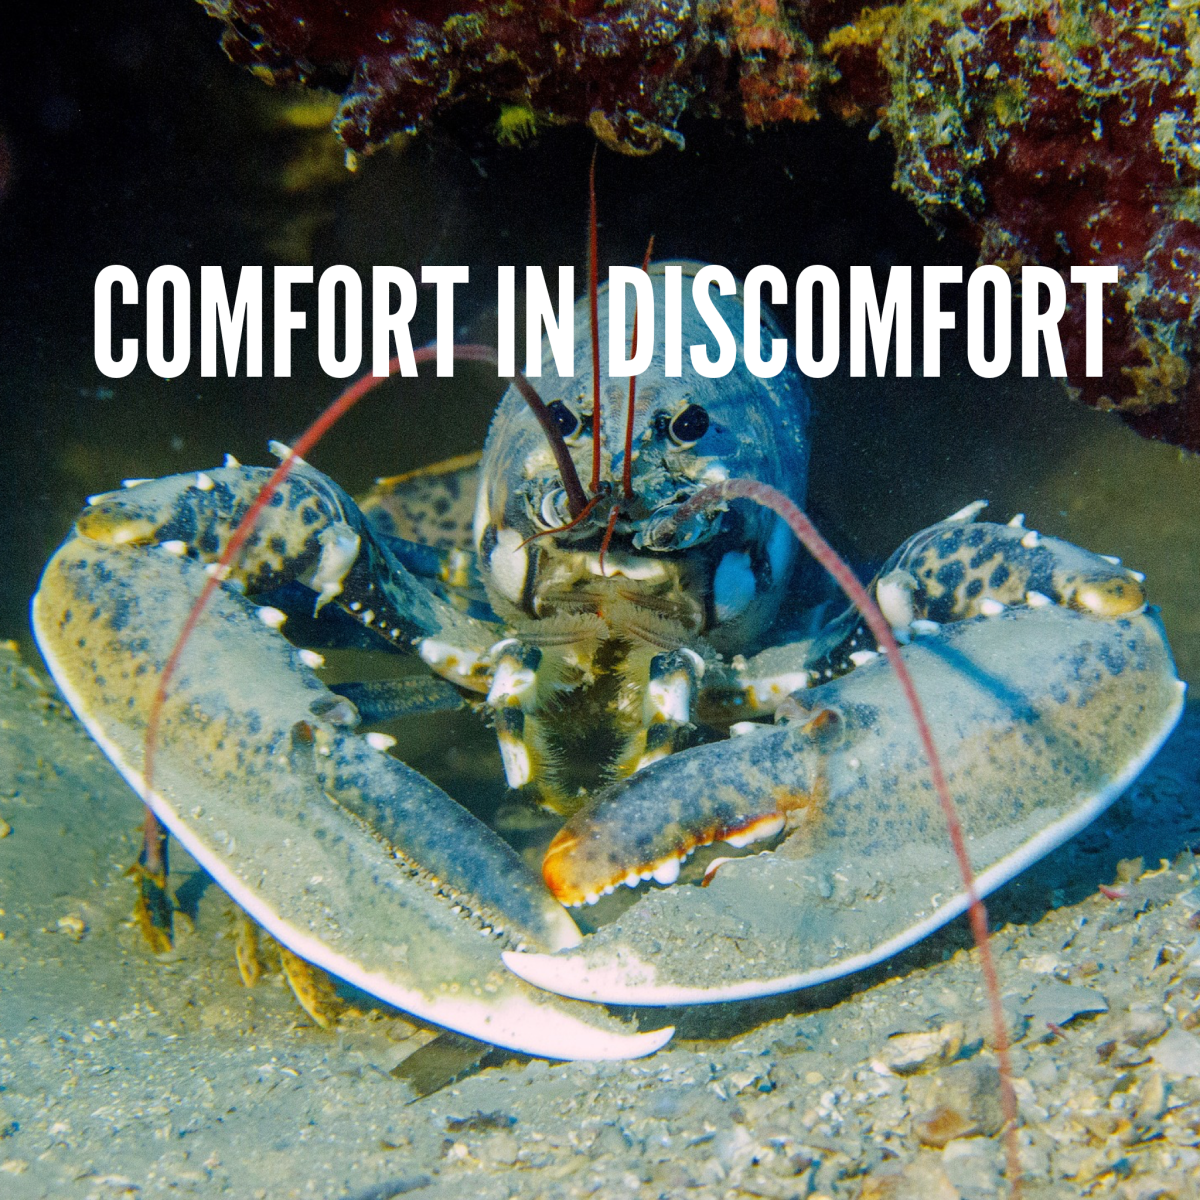 Comfort in Discomfort: Shin Splints, Karate and Lobsters